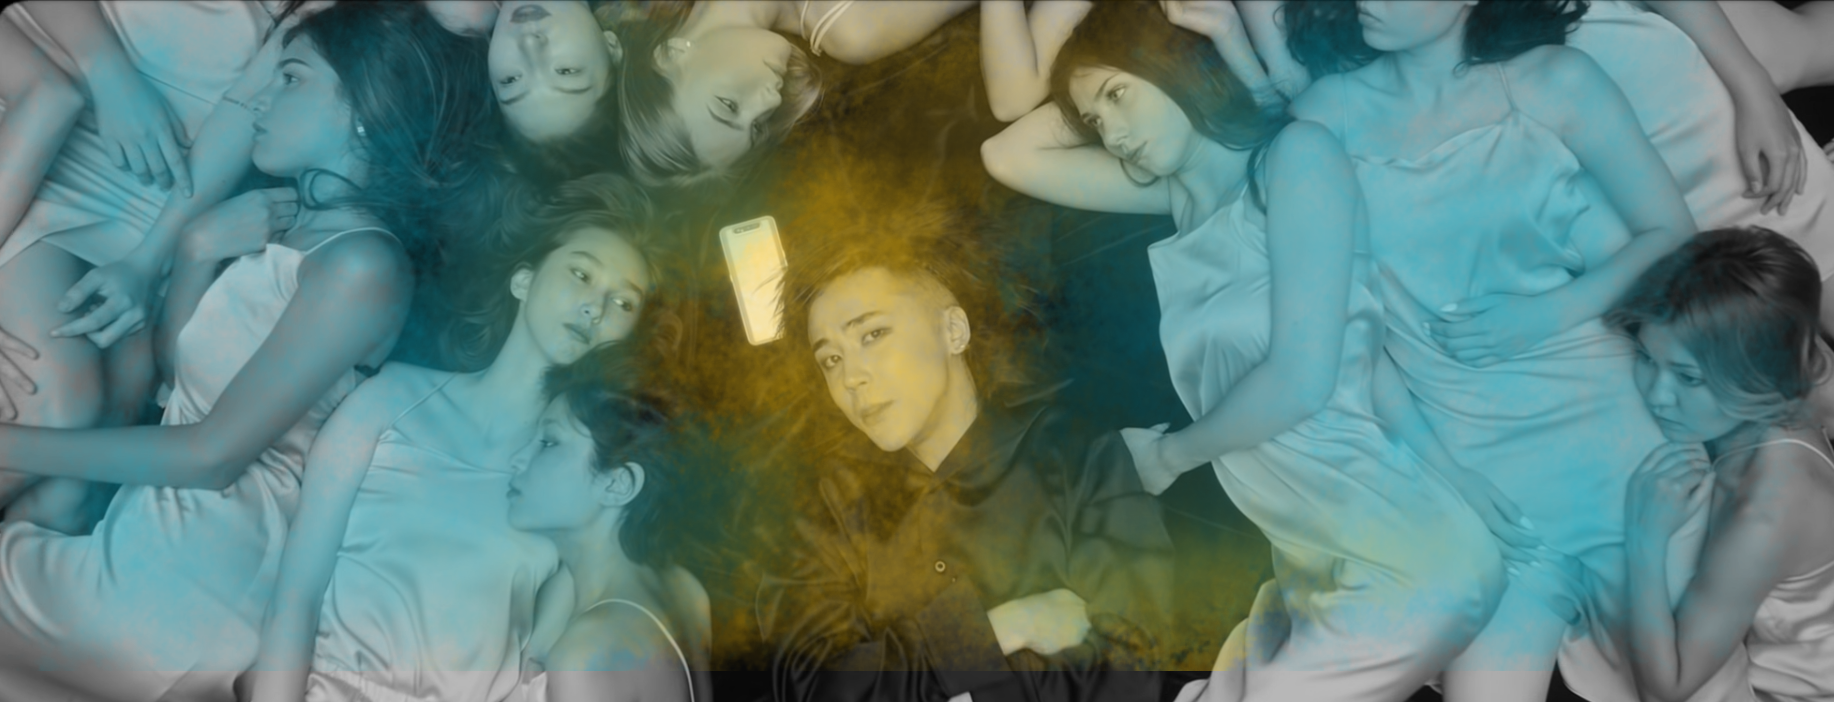 """Image of AZ surrounded by prone women from the """"Men Emes"""" video"""